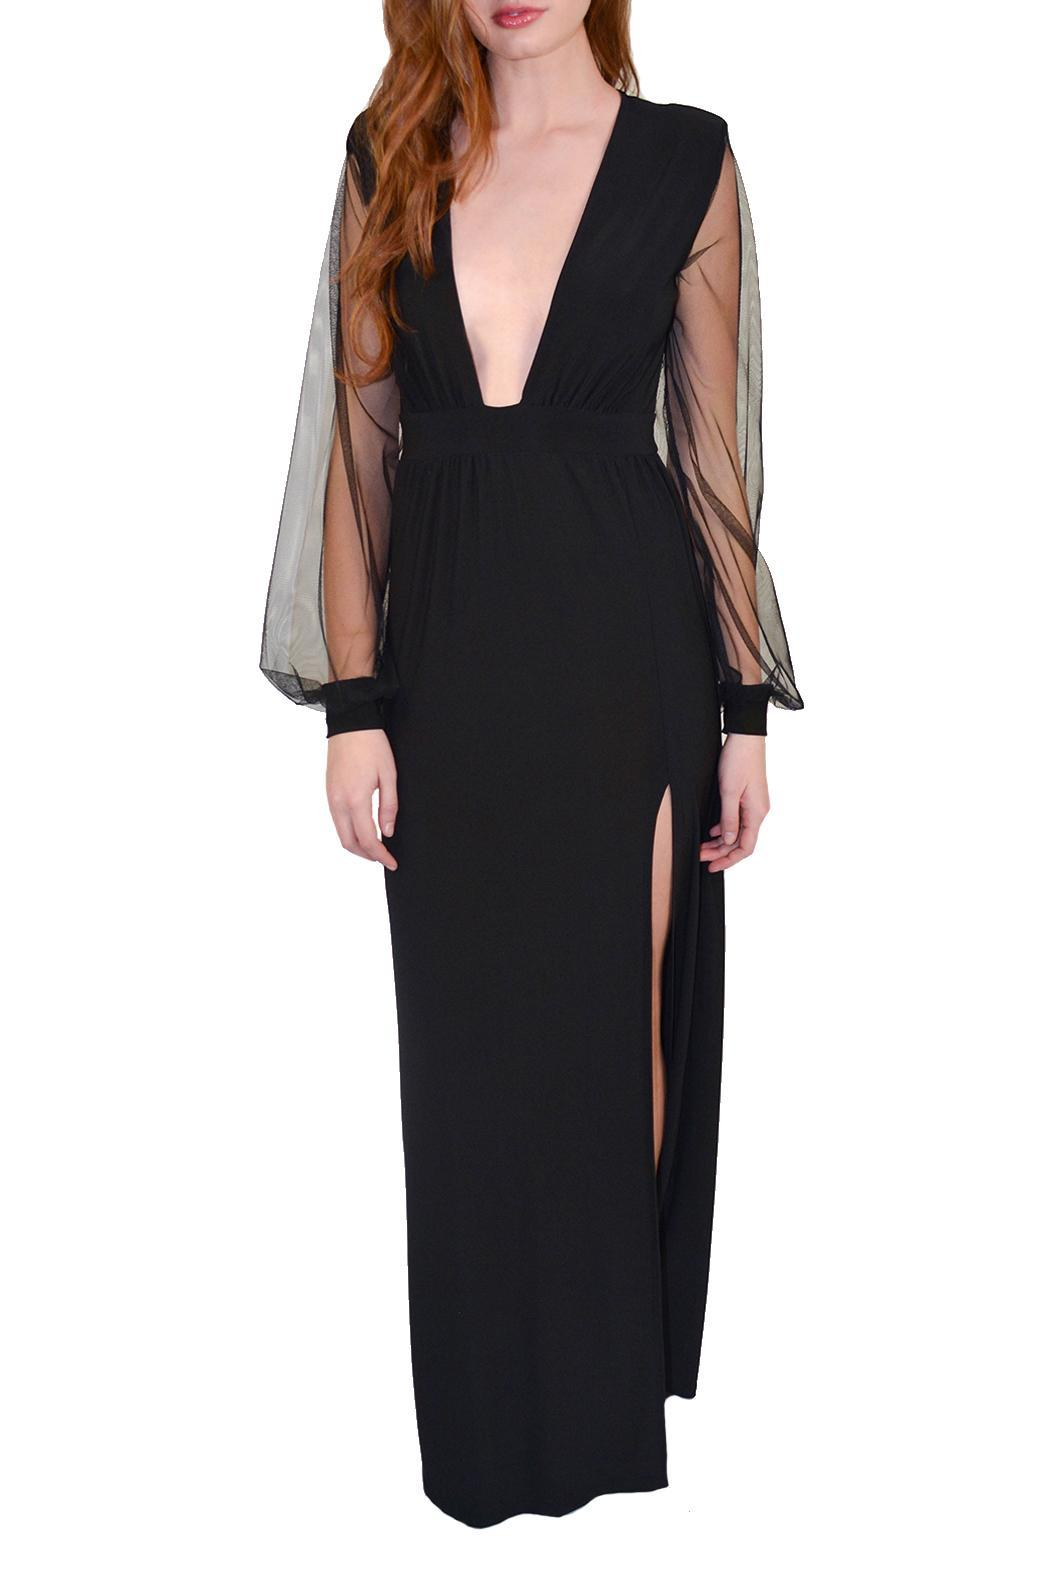 Alana Ferr Atelier Sheer Sleeve Dress - Front Full Image